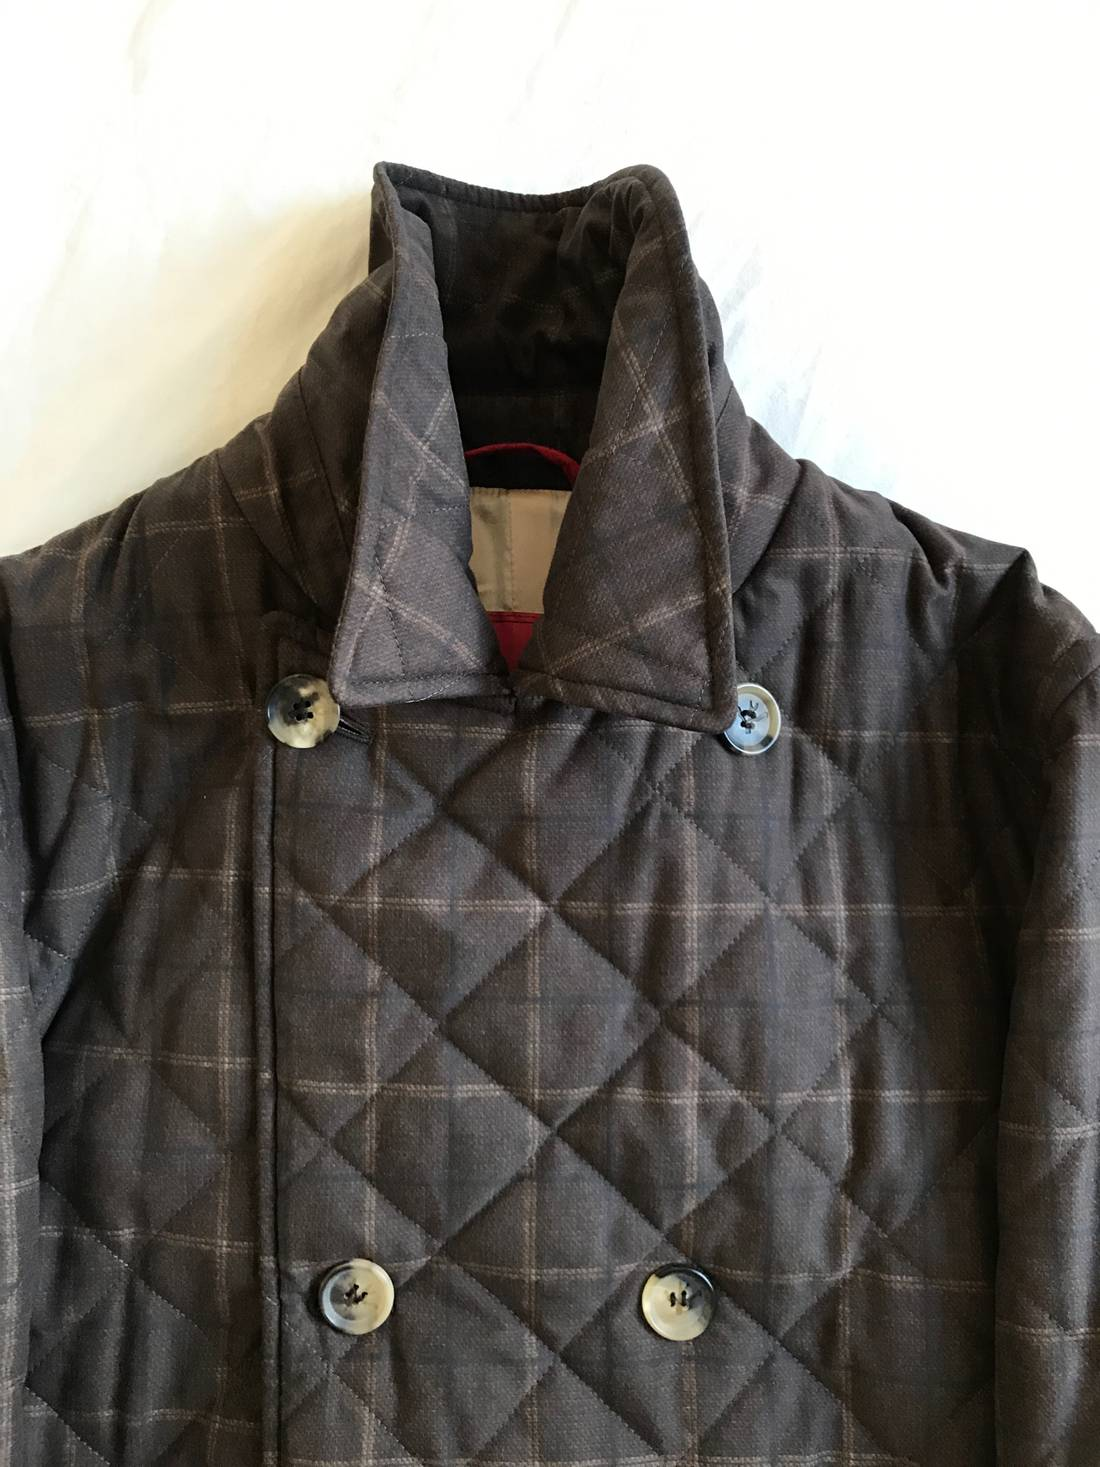 Isaia ISAIA Quilted Peacoat 40R Size m - Heavy Coats for Sale ... : quilted pea coat - Adamdwight.com